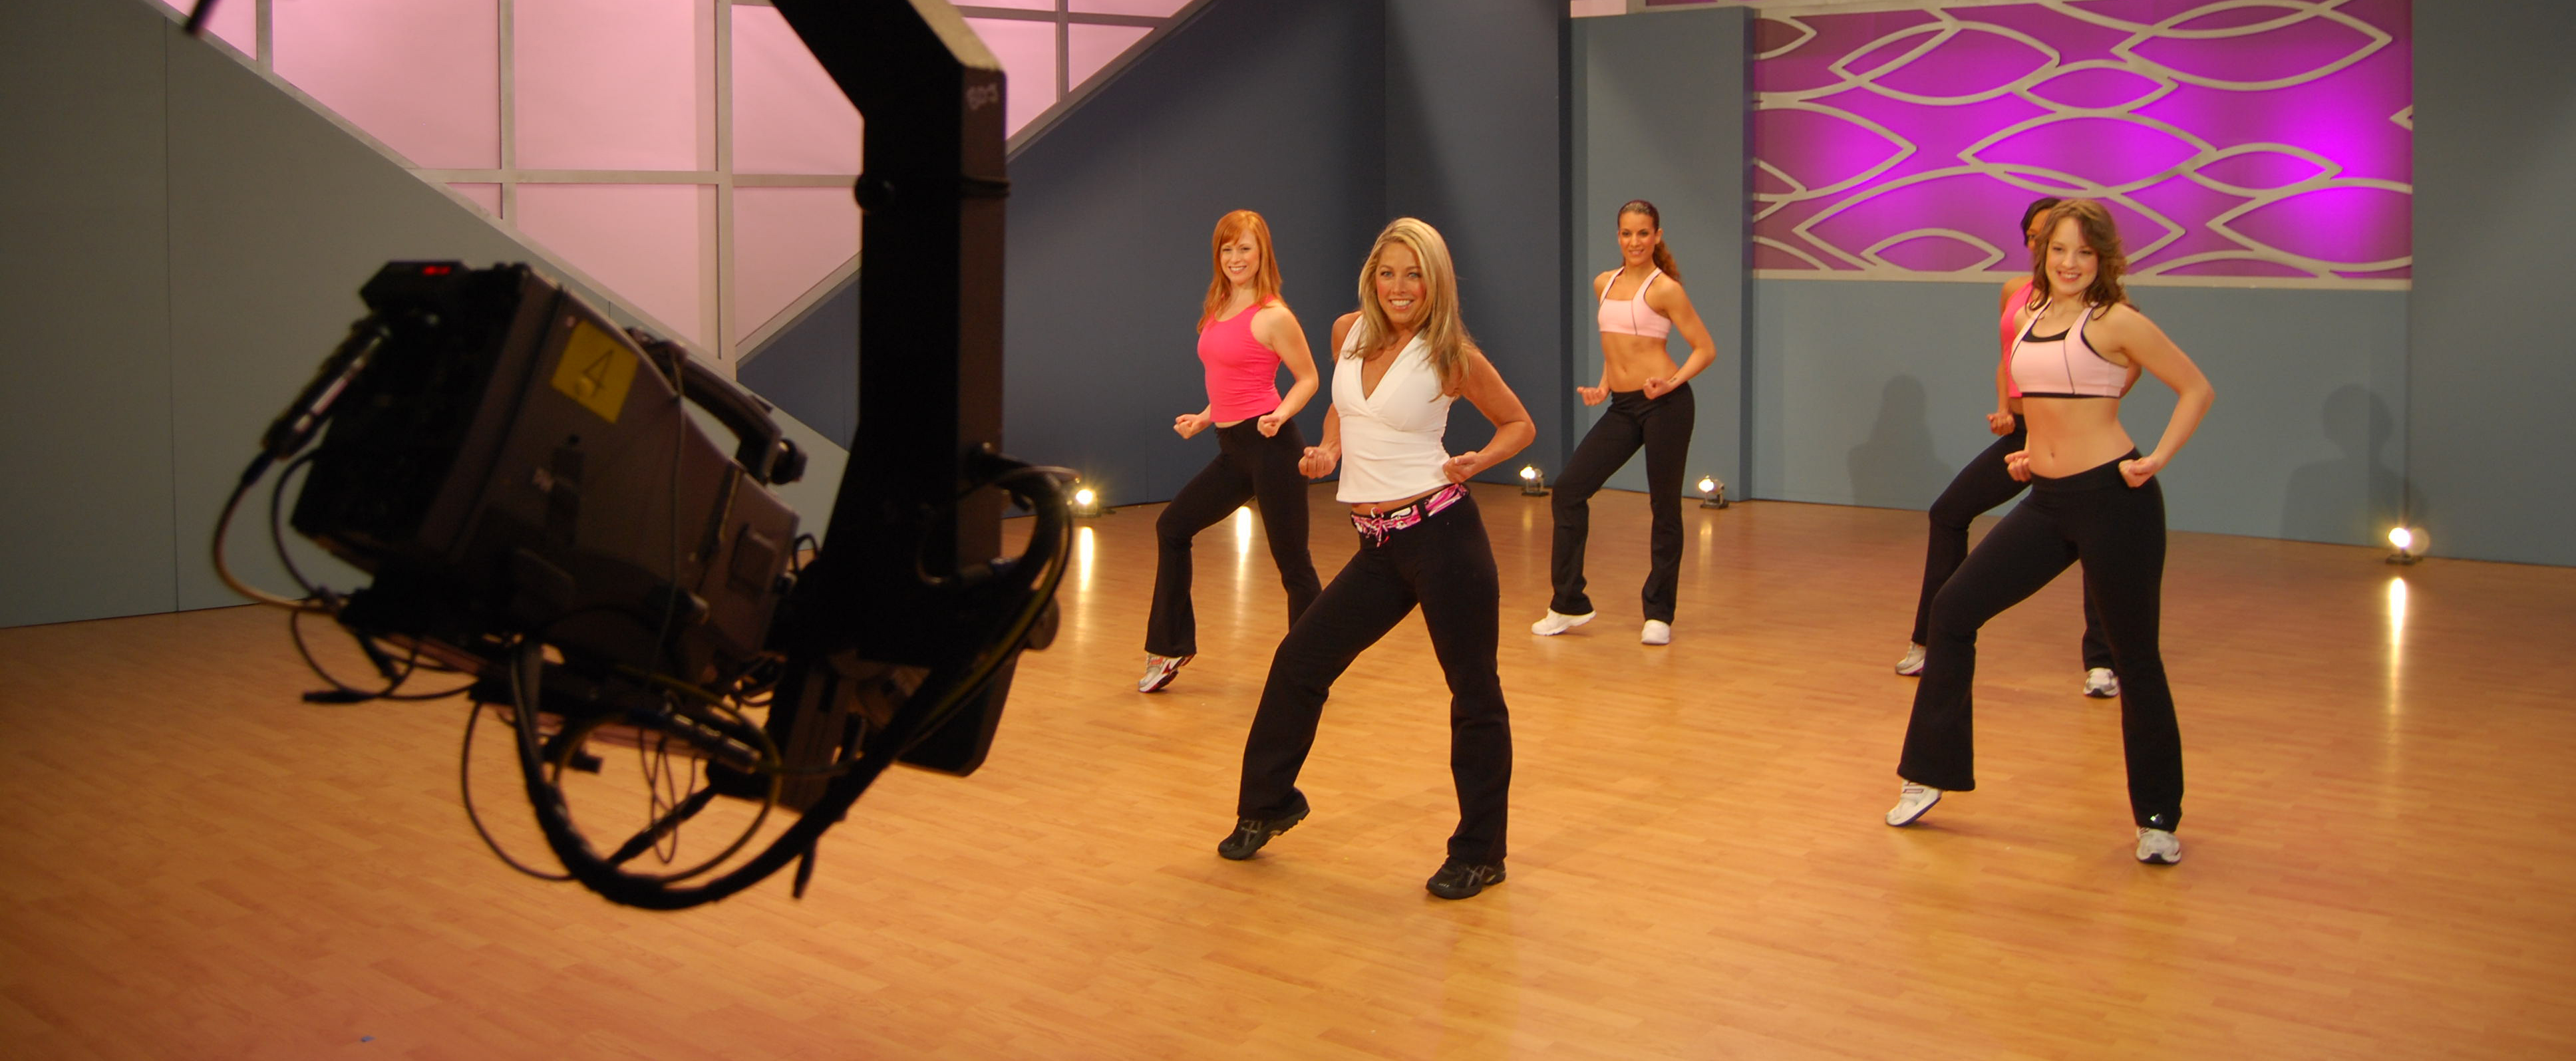 DENISE AUSTIN WORKOUT DVDS